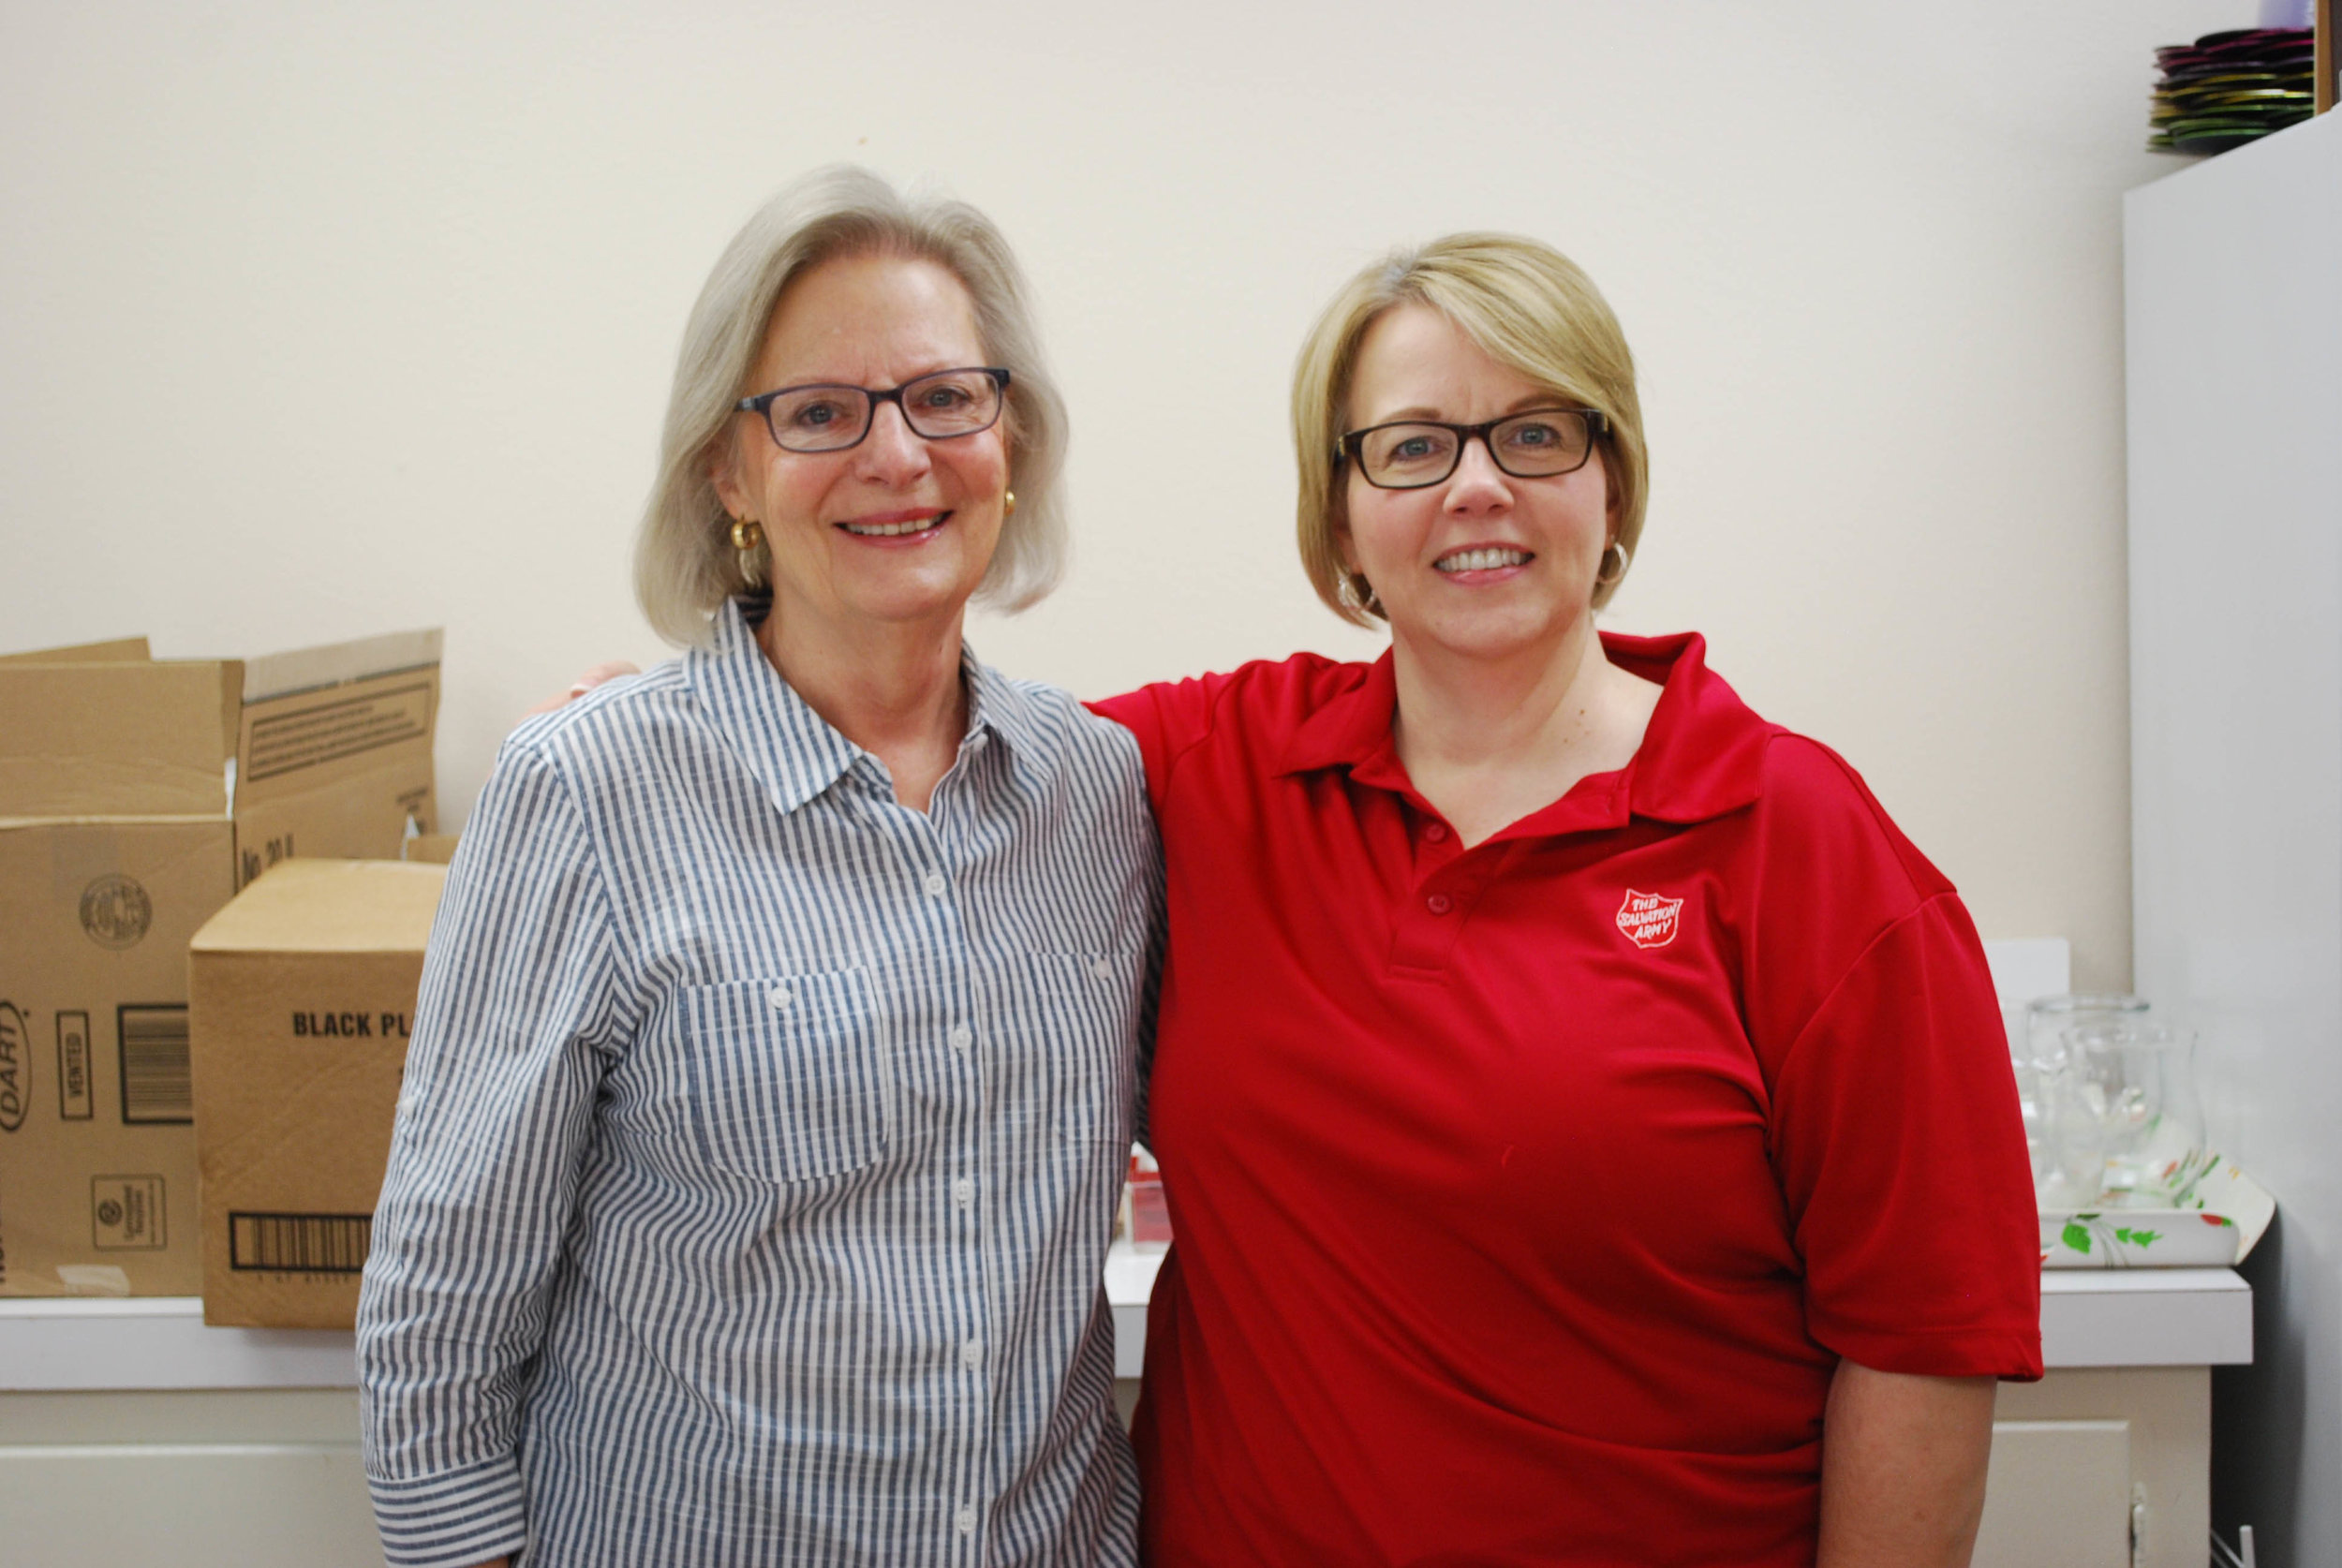 Linda McDaniel and Maj. Louise Feeser